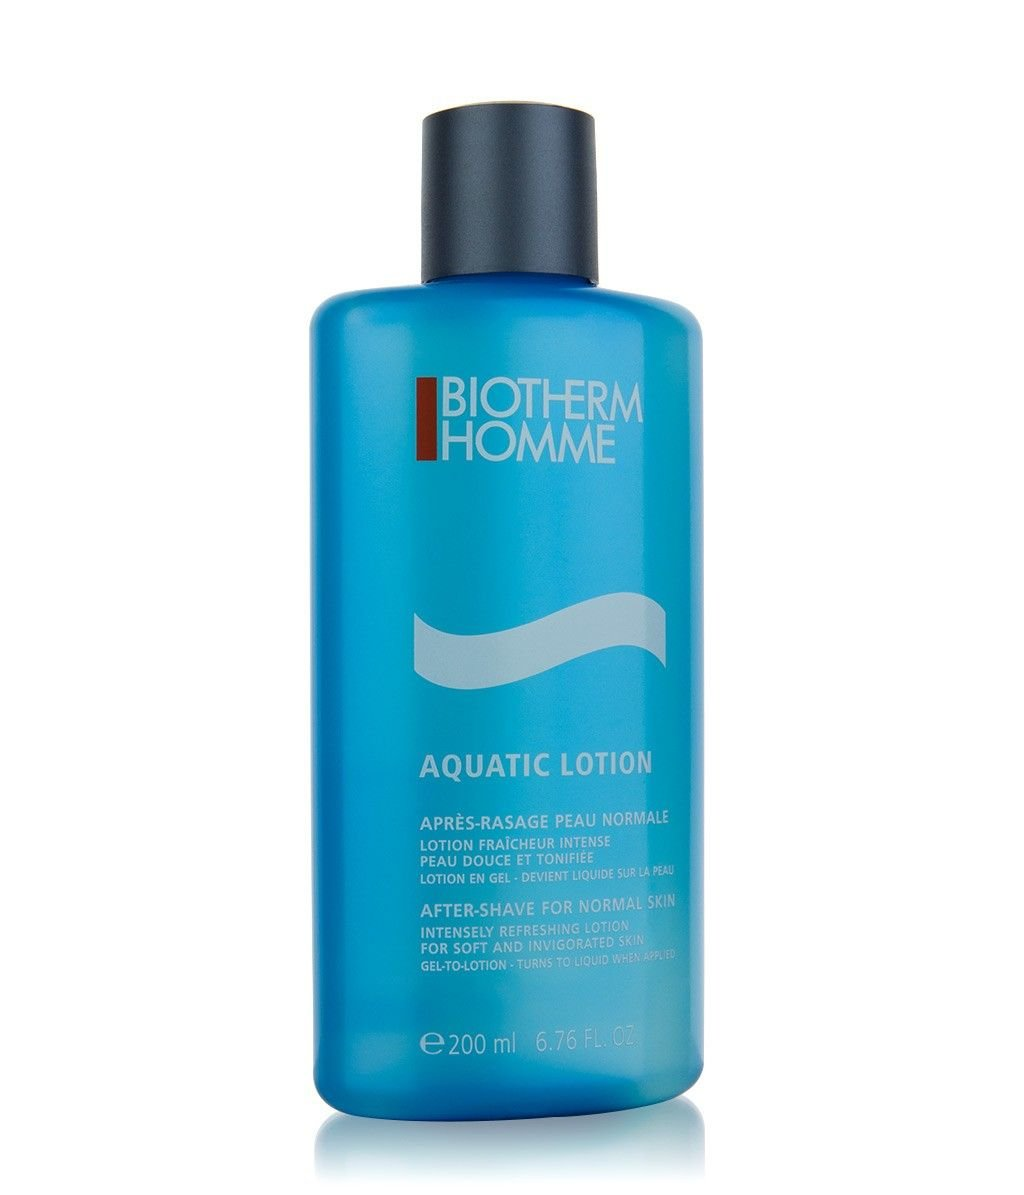 Biotherm Homme Aquatic Lotion Cosmetic 200ml